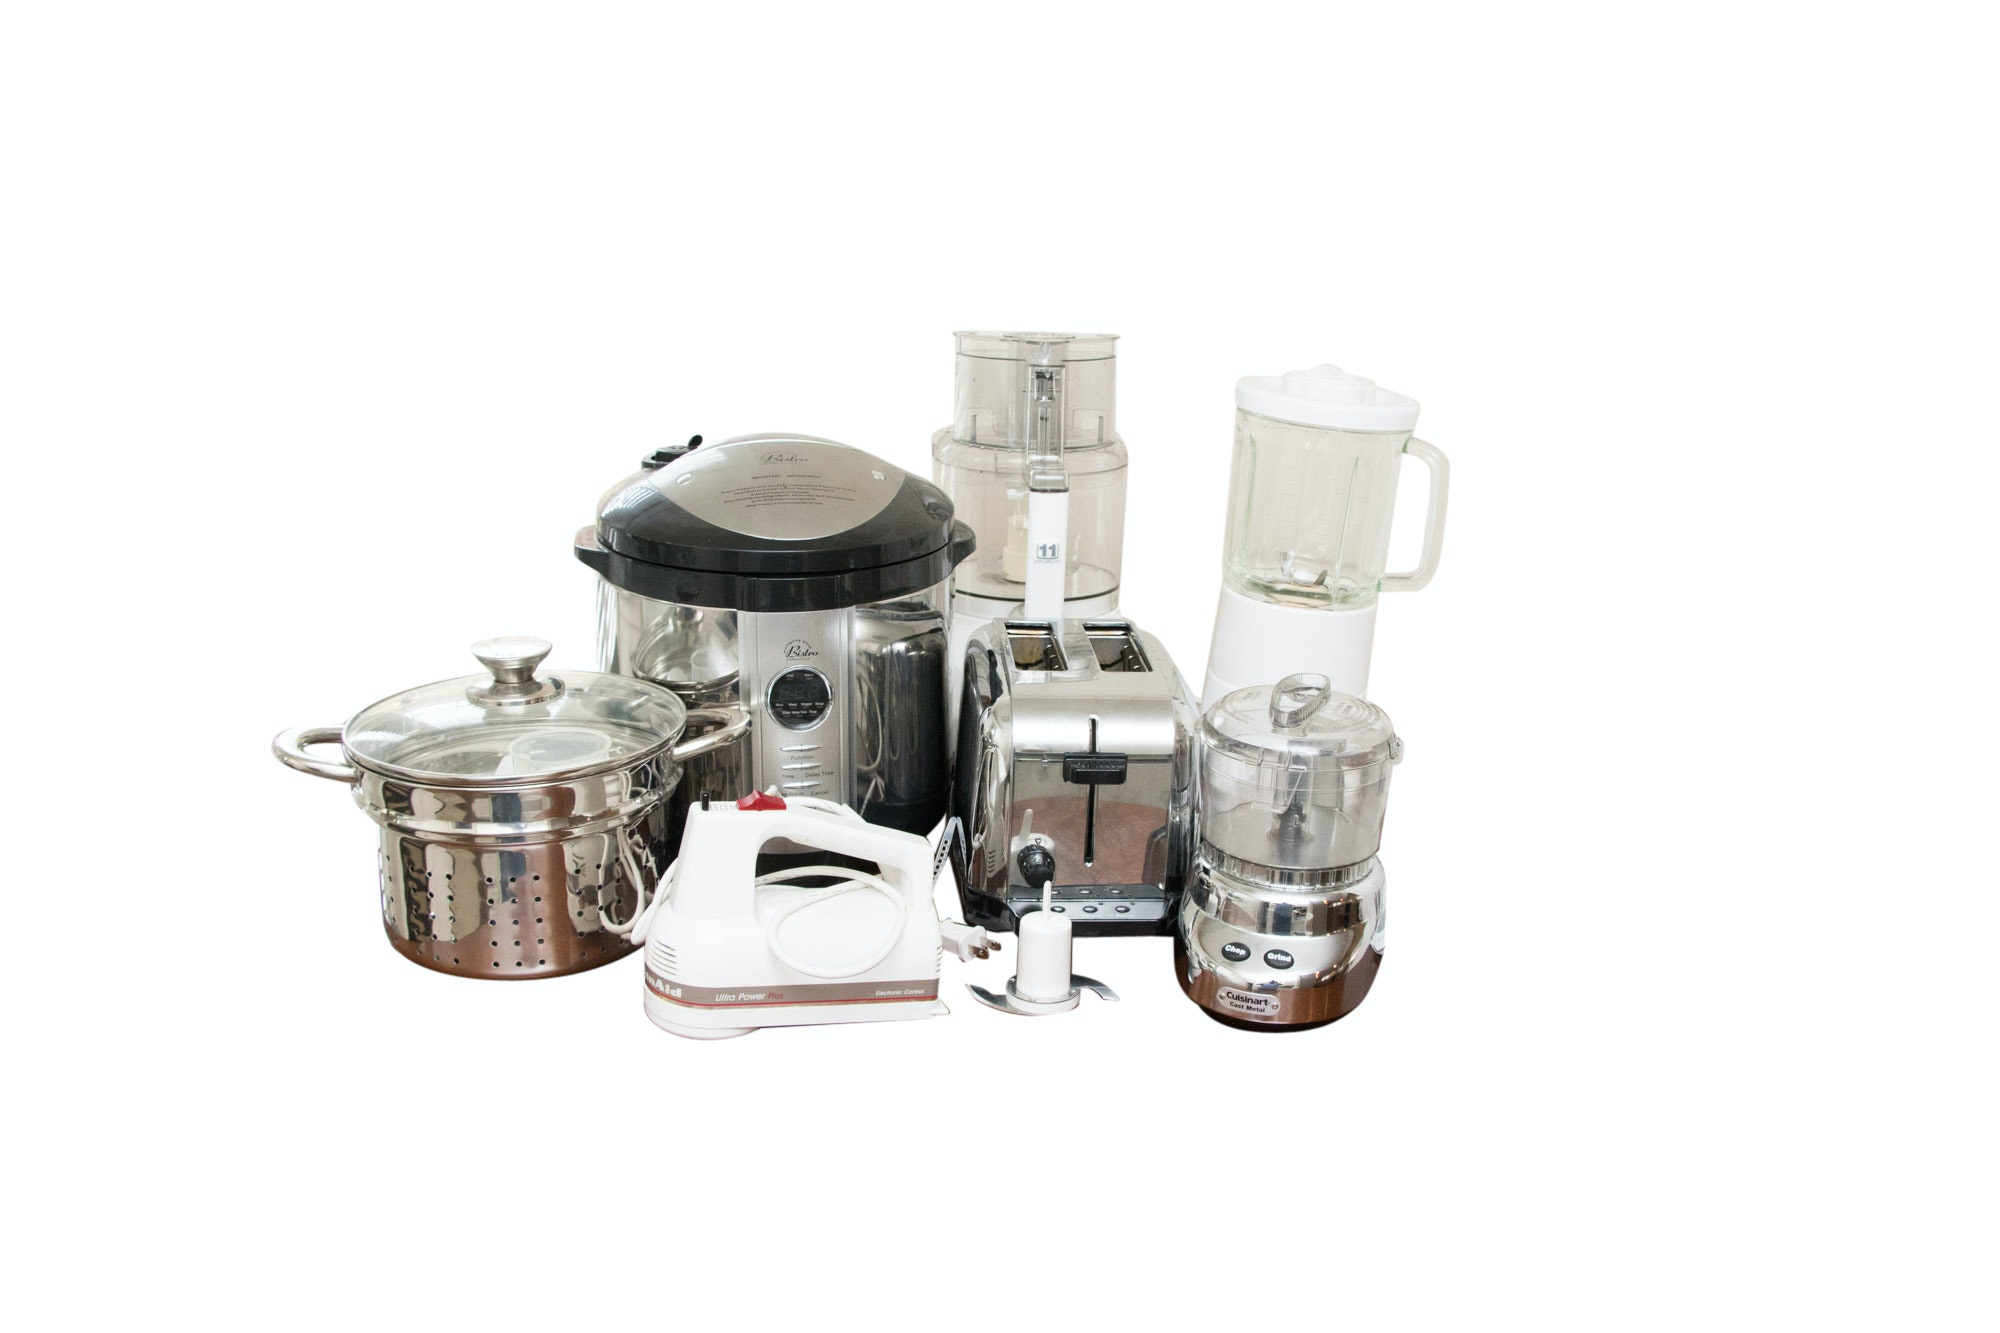 Small Kitchen Appliances Including Cuisinart, KitchenAide and Williams-Sonoma